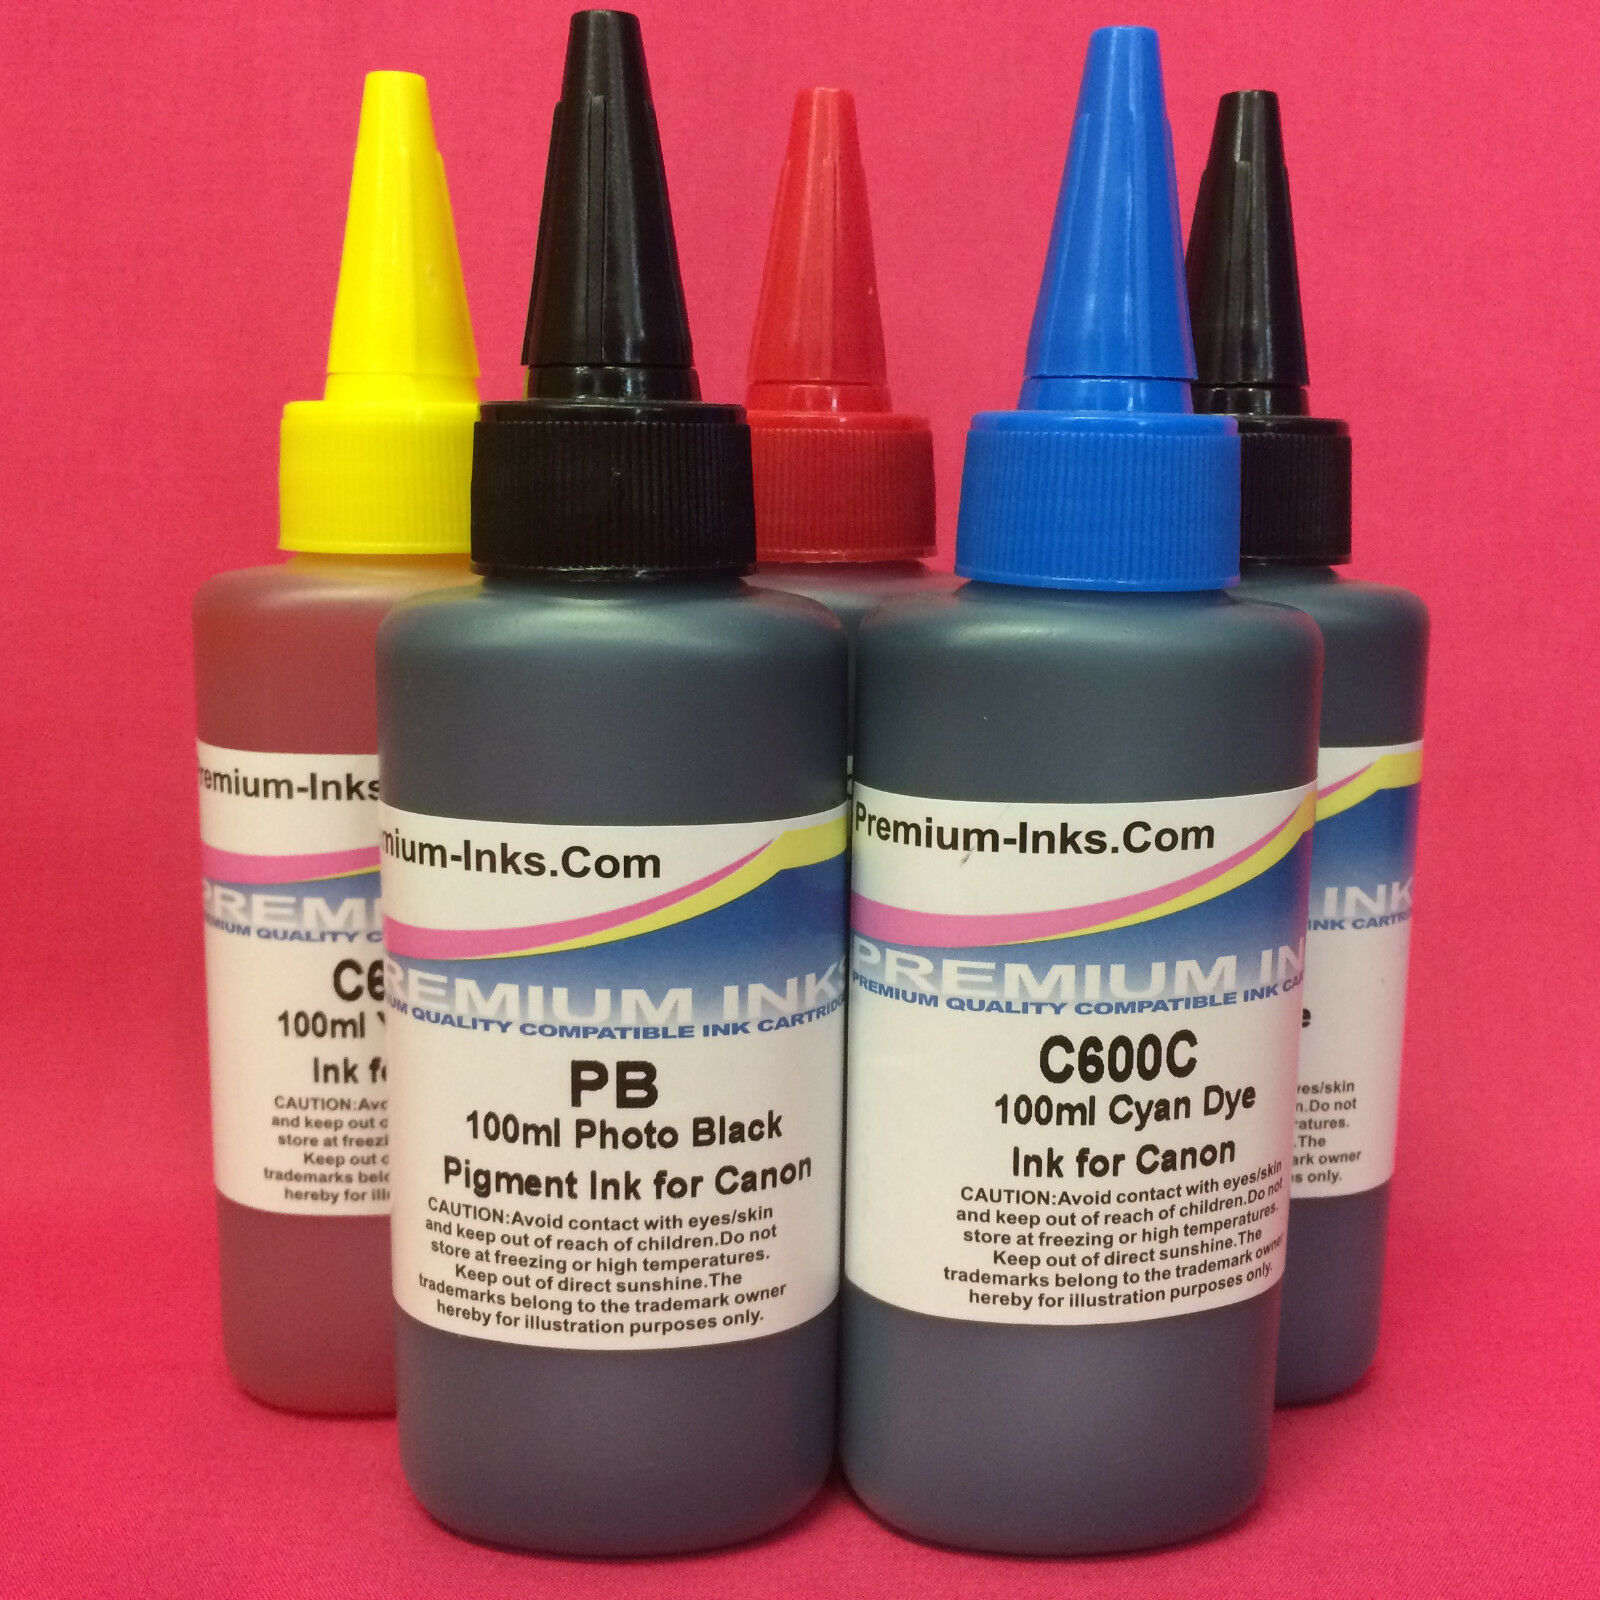 5 Pigment Dye Bulk Ink Refill Bottles For Canon Pixma Mg7150 Ip7250 Tinta Sun Kit Hp Black And Colour 1 Of 4free Shipping